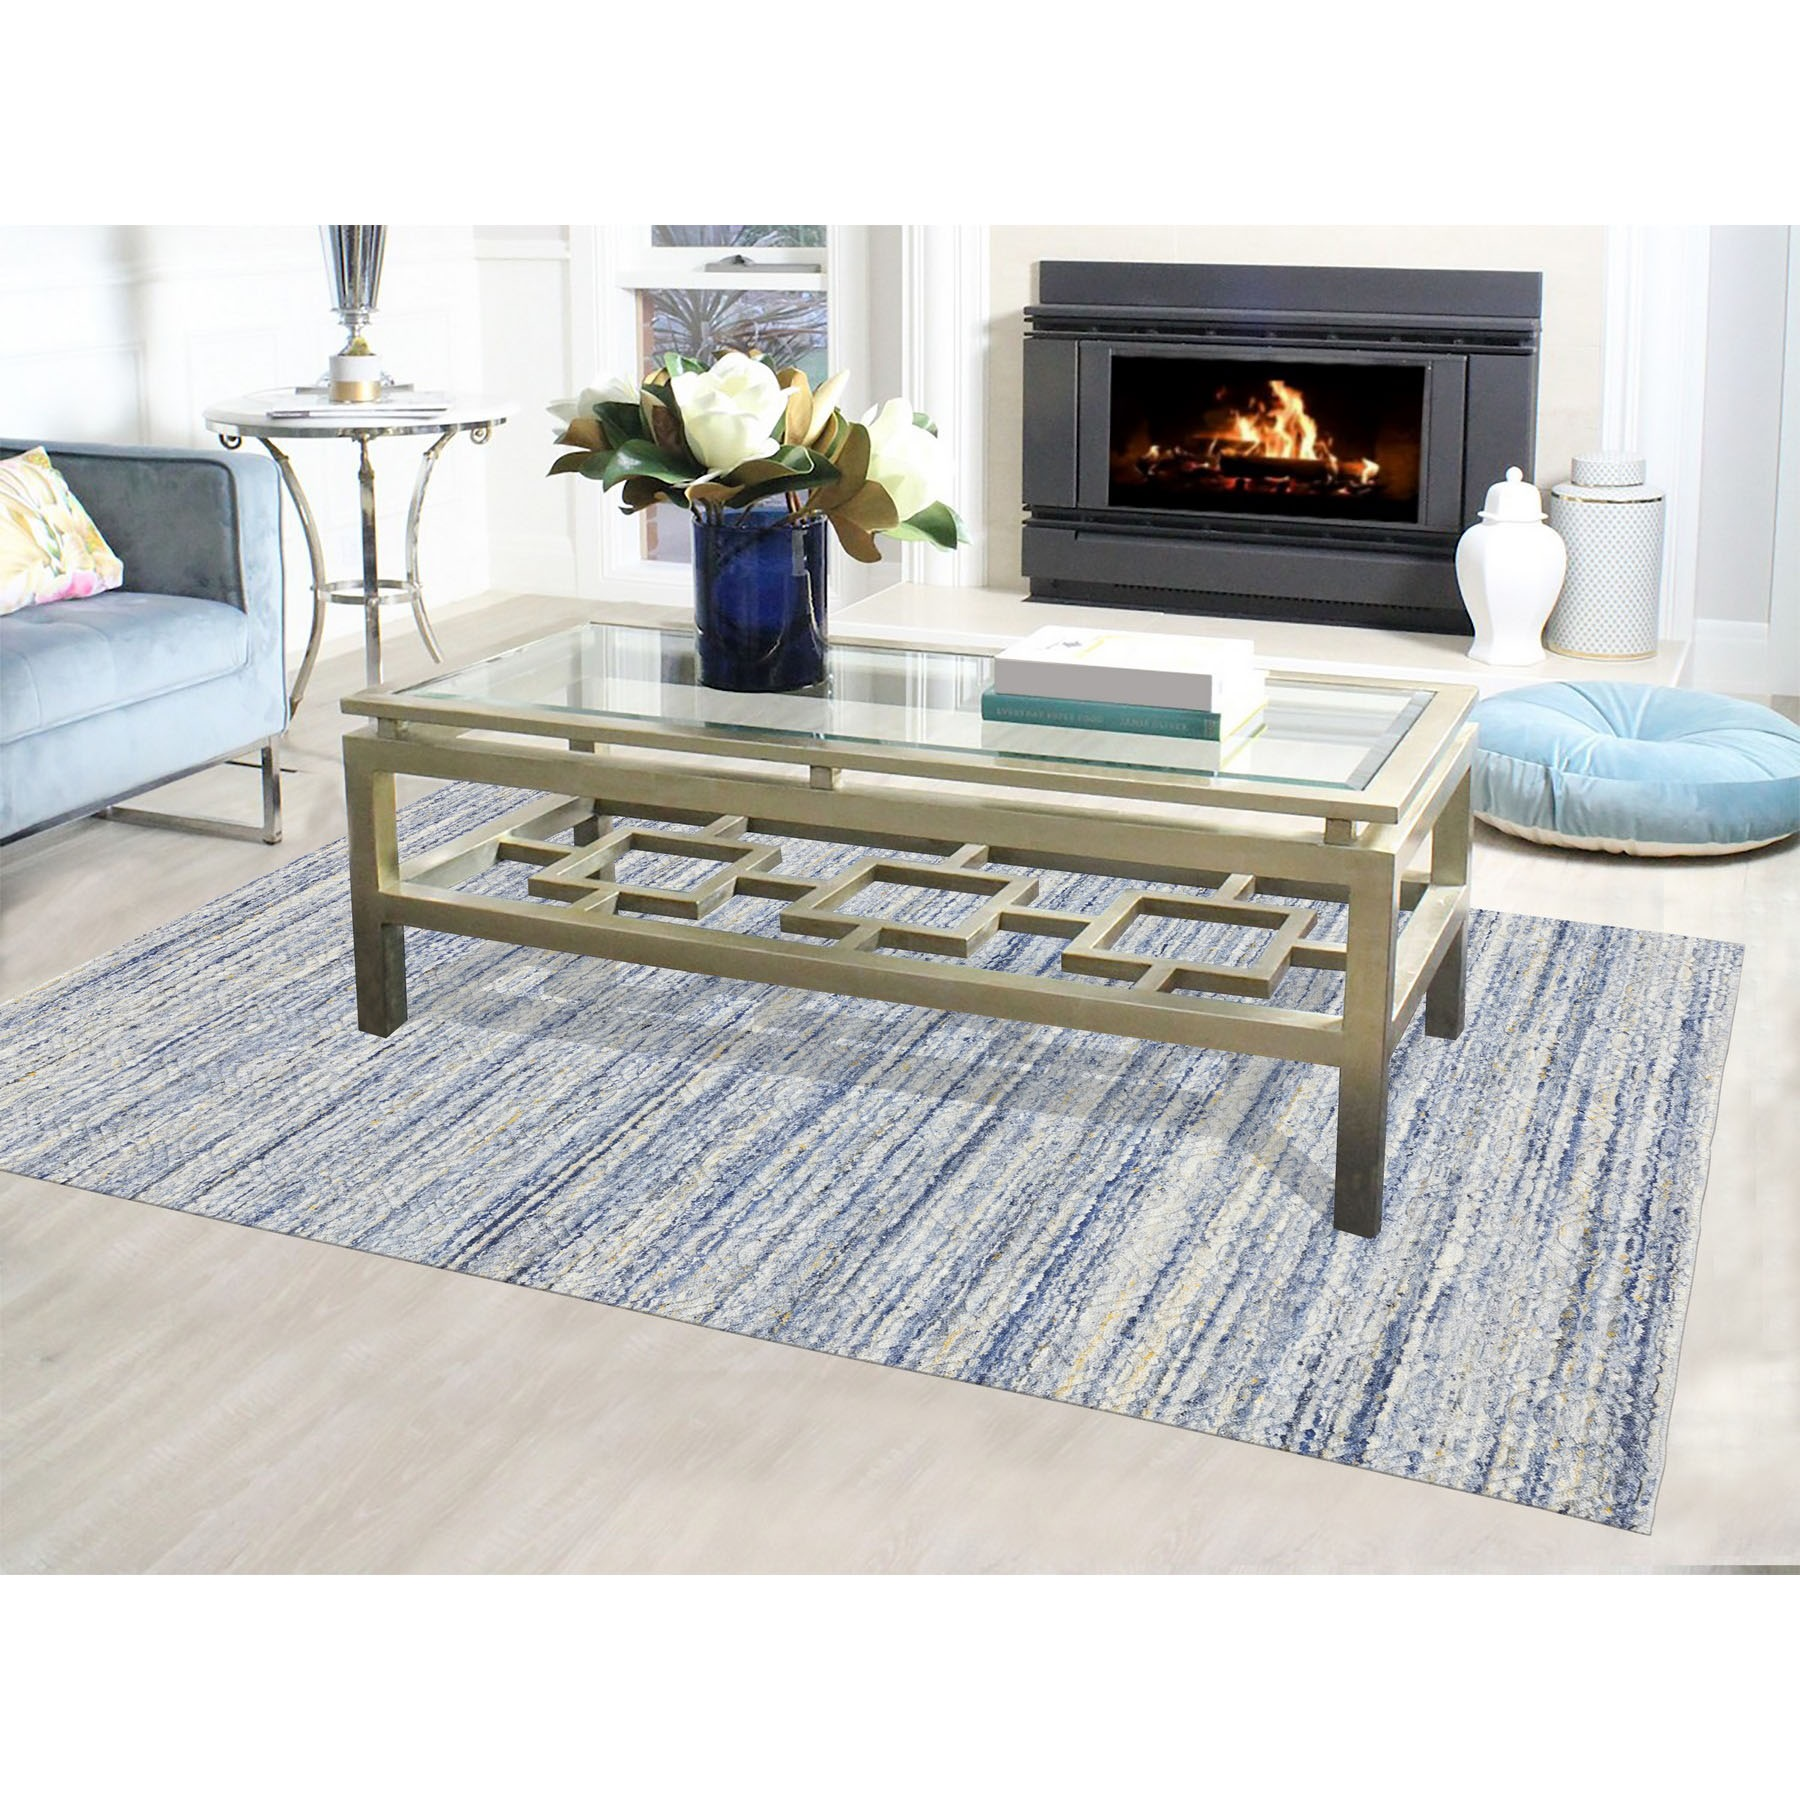 "6'x8'10"" Blue Variegated Design Hand Loomed Pure Wool Modern Oriental Rug"